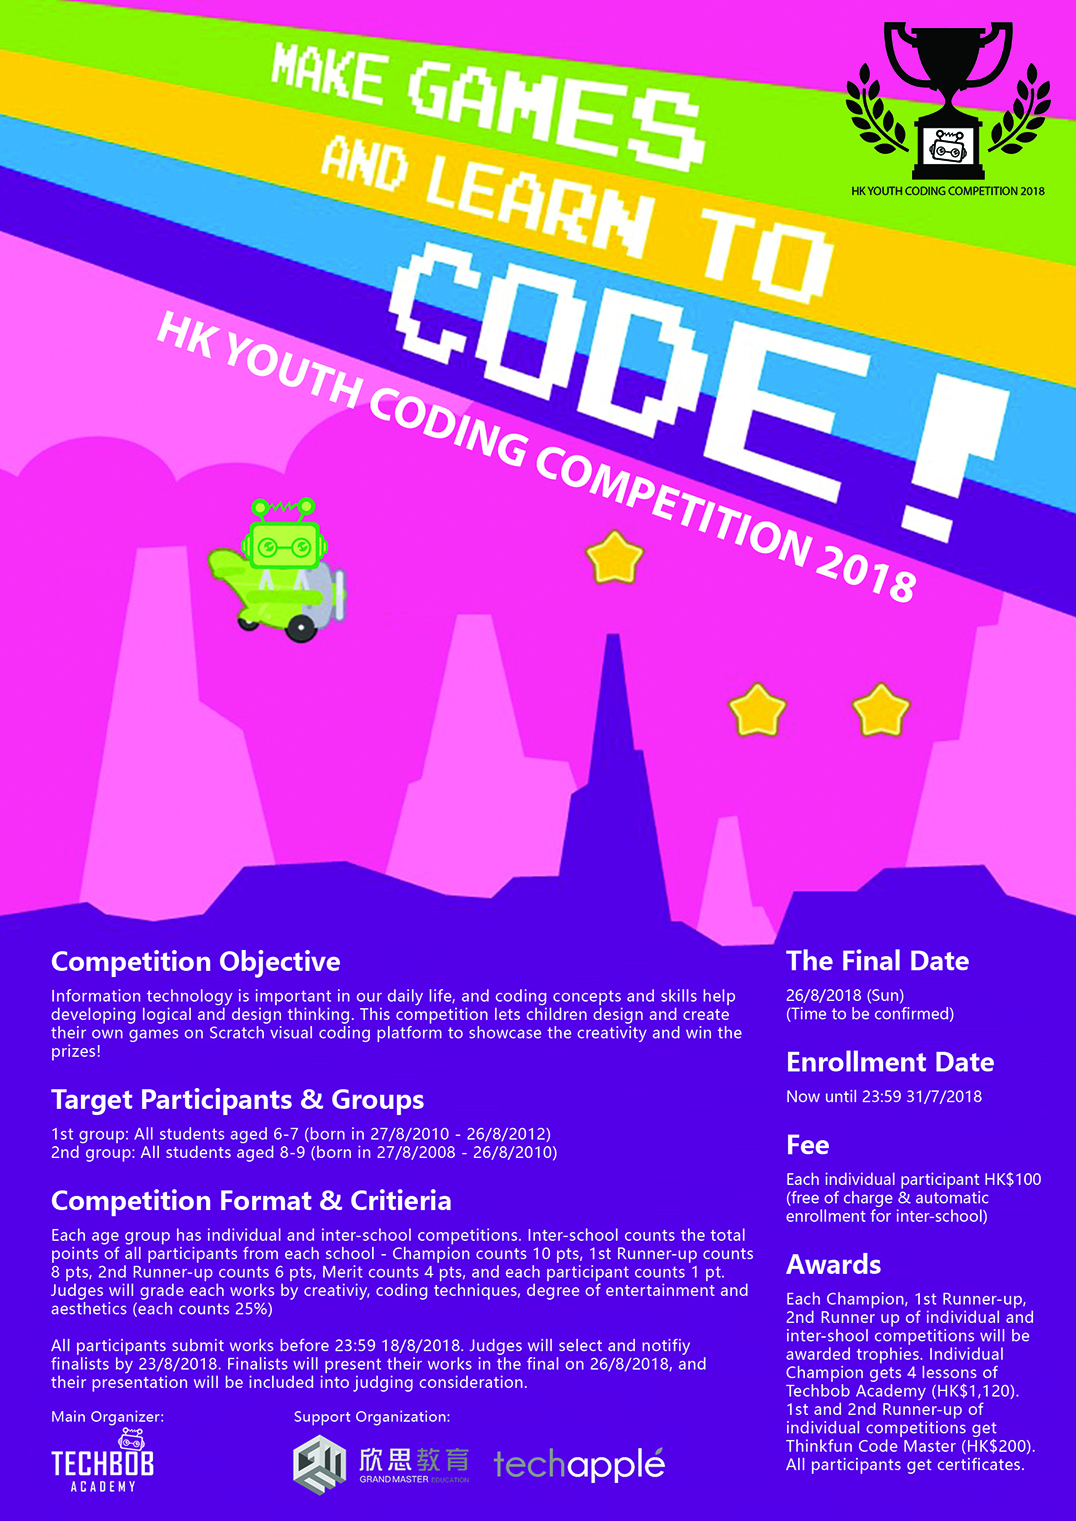 HK Youth Coding Competition 2018